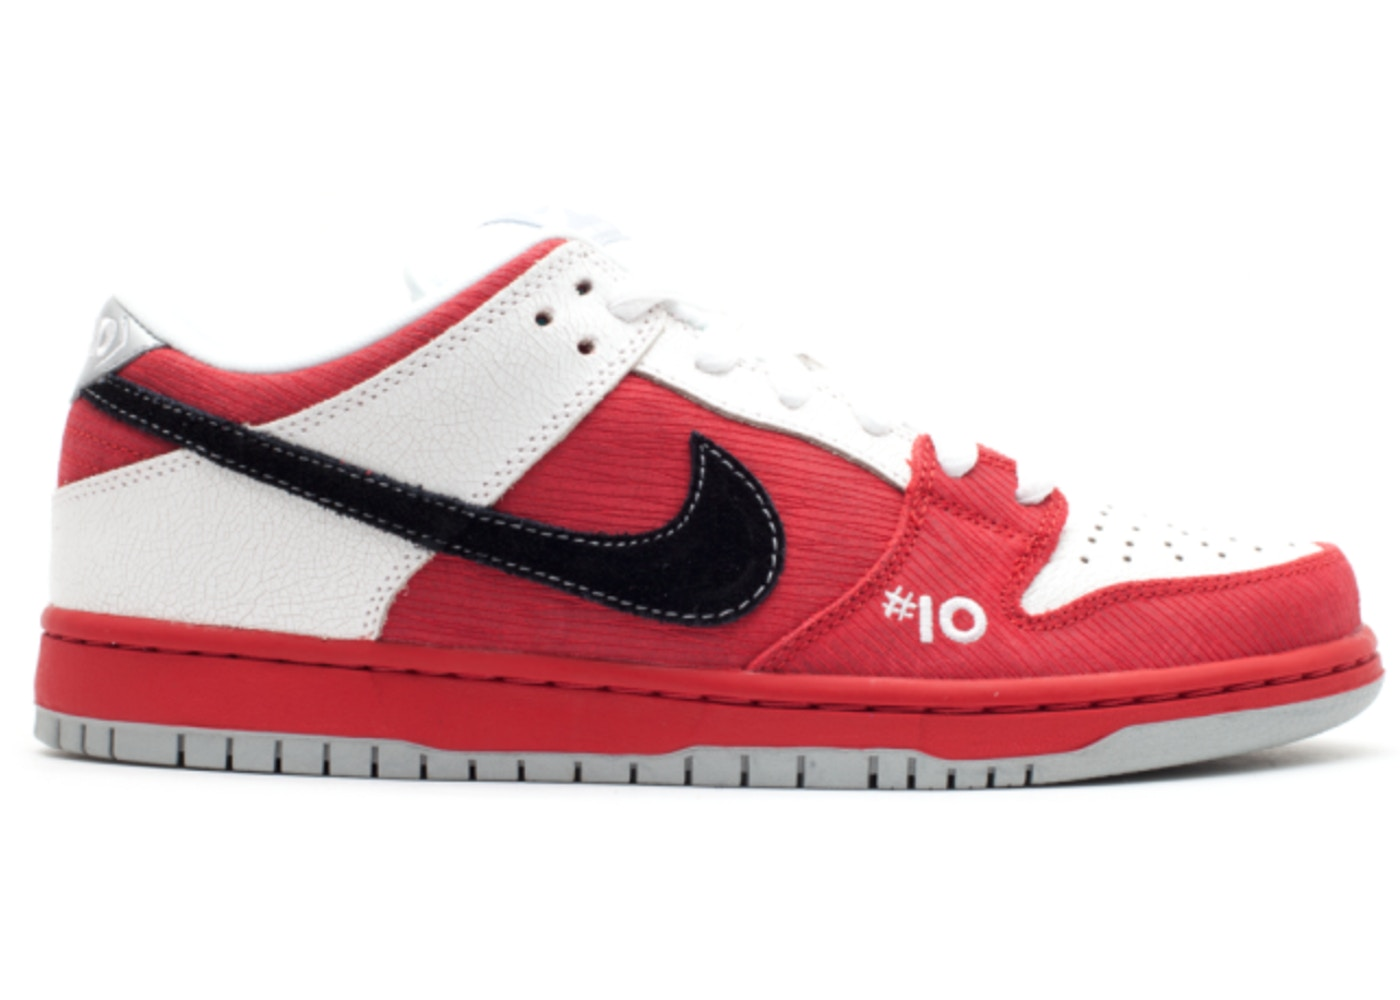 low priced 33e88 65112 Nike Dunk SB Low Roller Derby